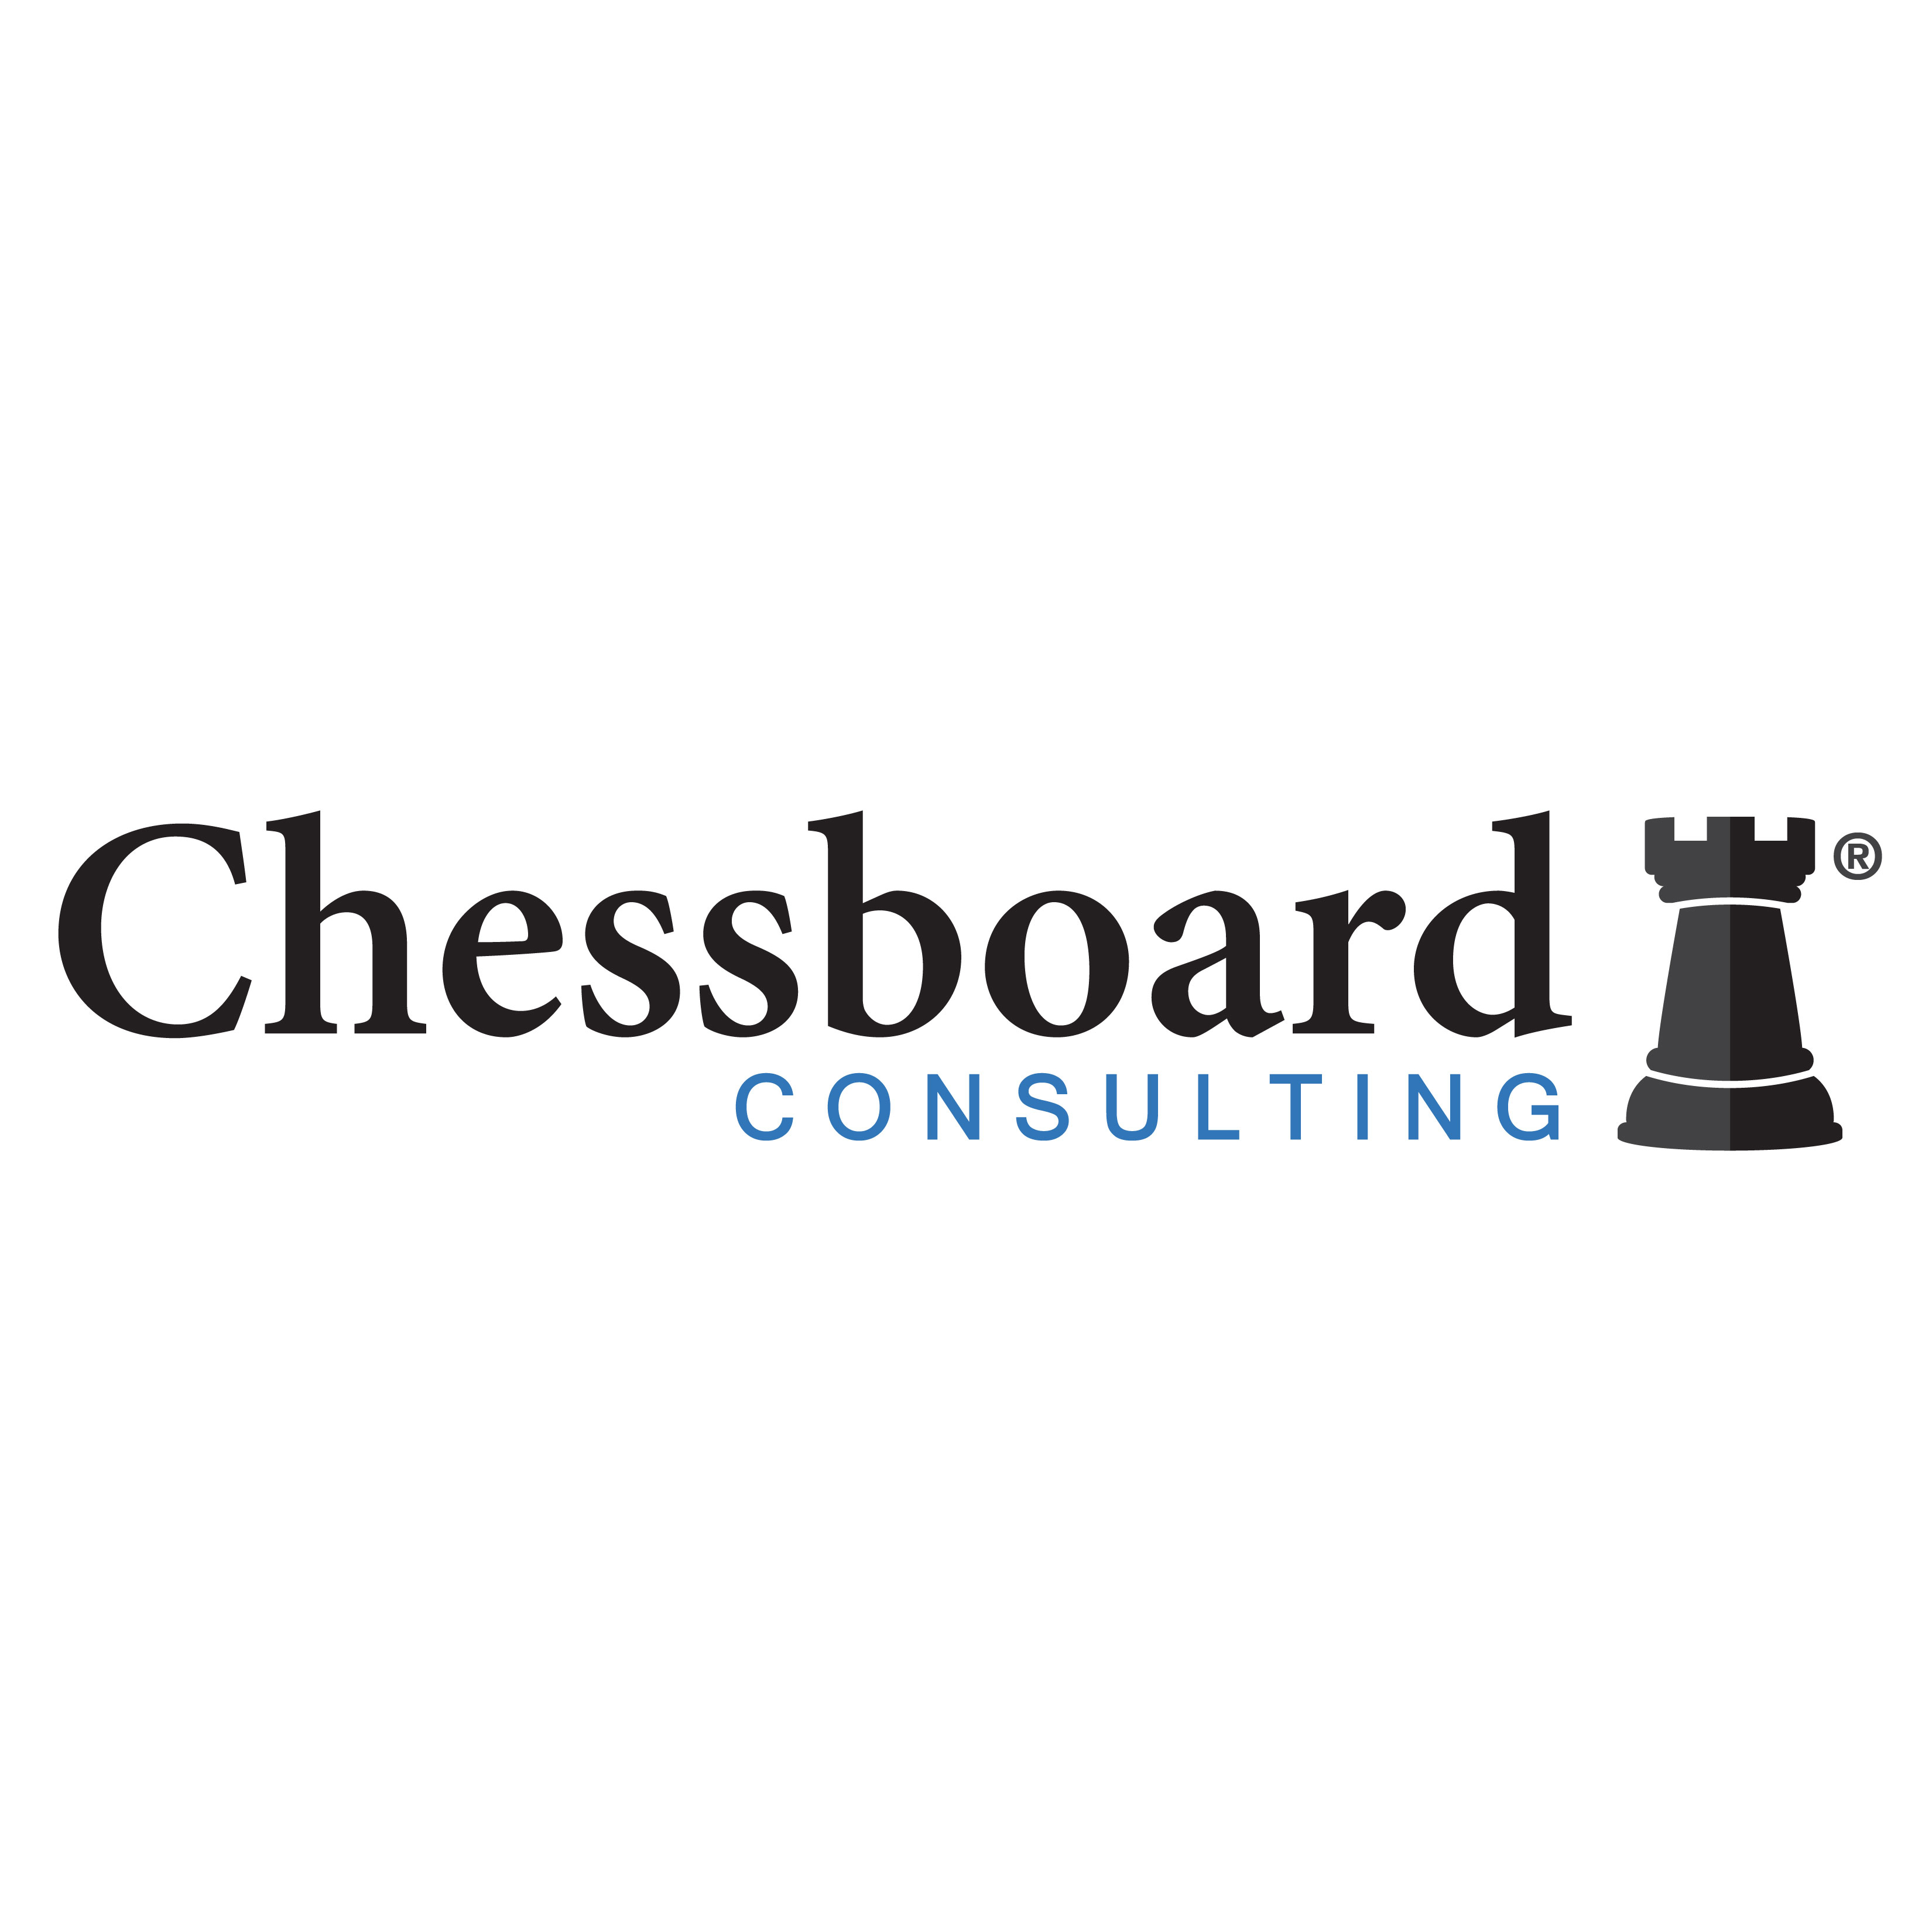 Chessboard Consulting